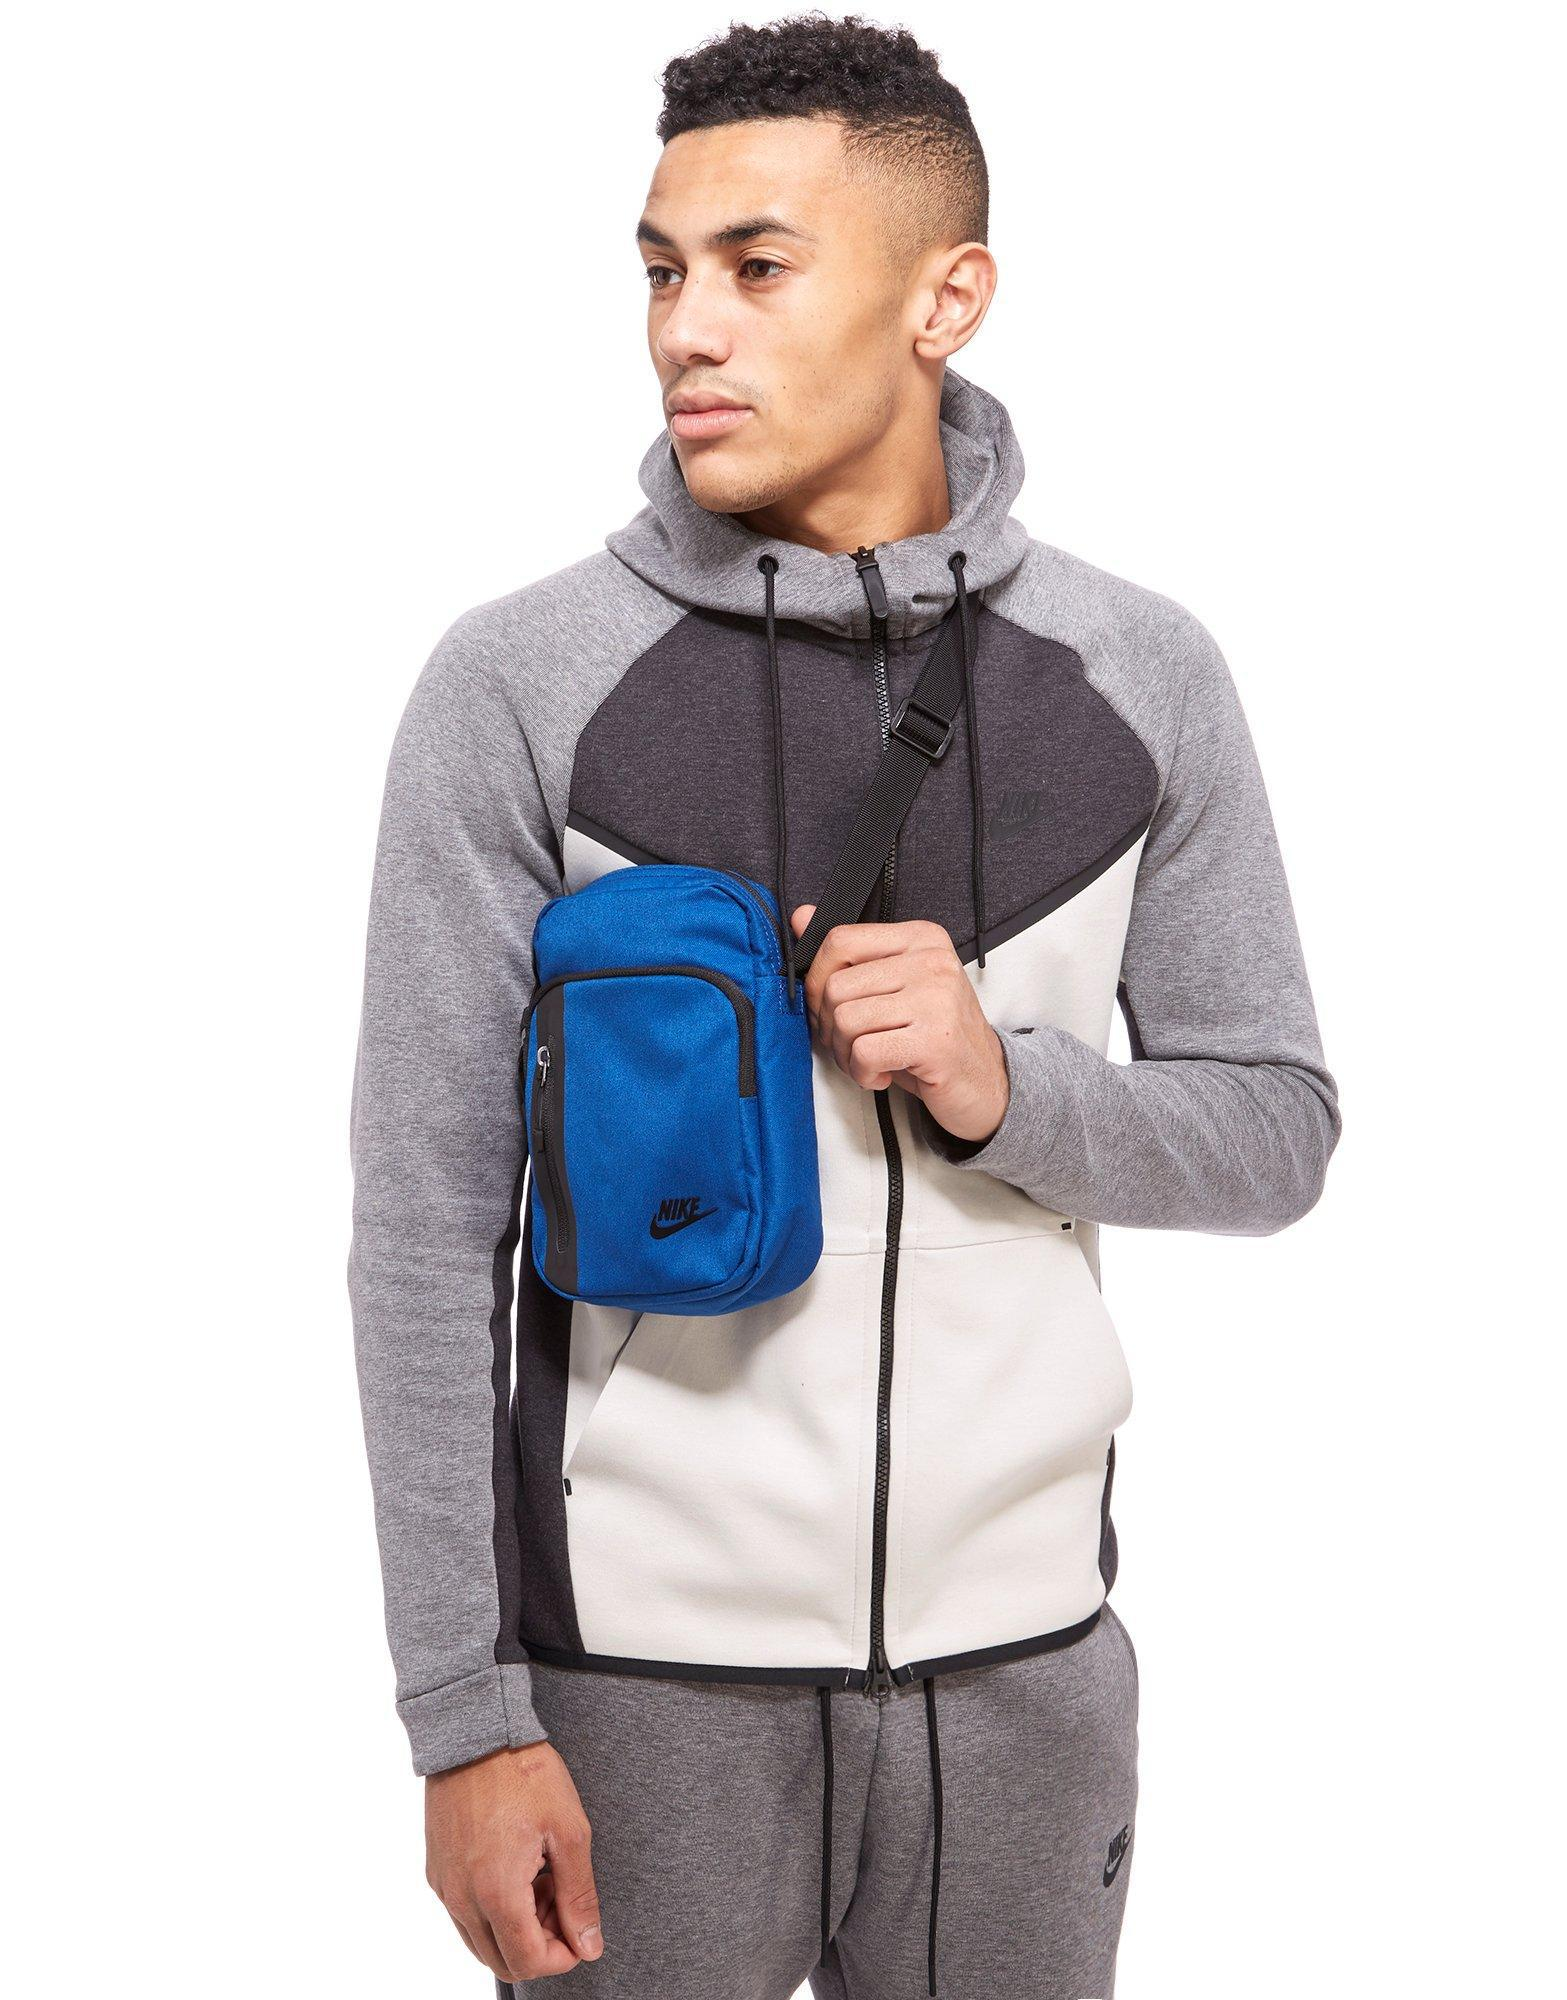 3f7d2e62348 Nike Core Small Items 3.0 Pouch Bag in Blue for Men - Lyst